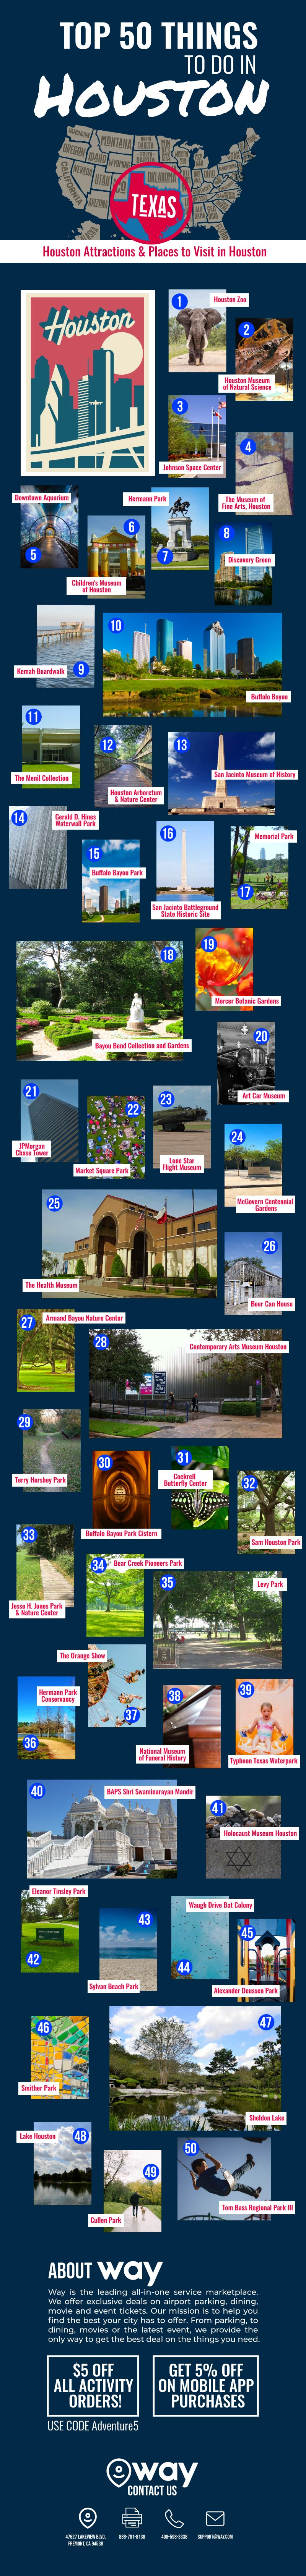 50 Must-Do Must-See Places in Houston - Infographic